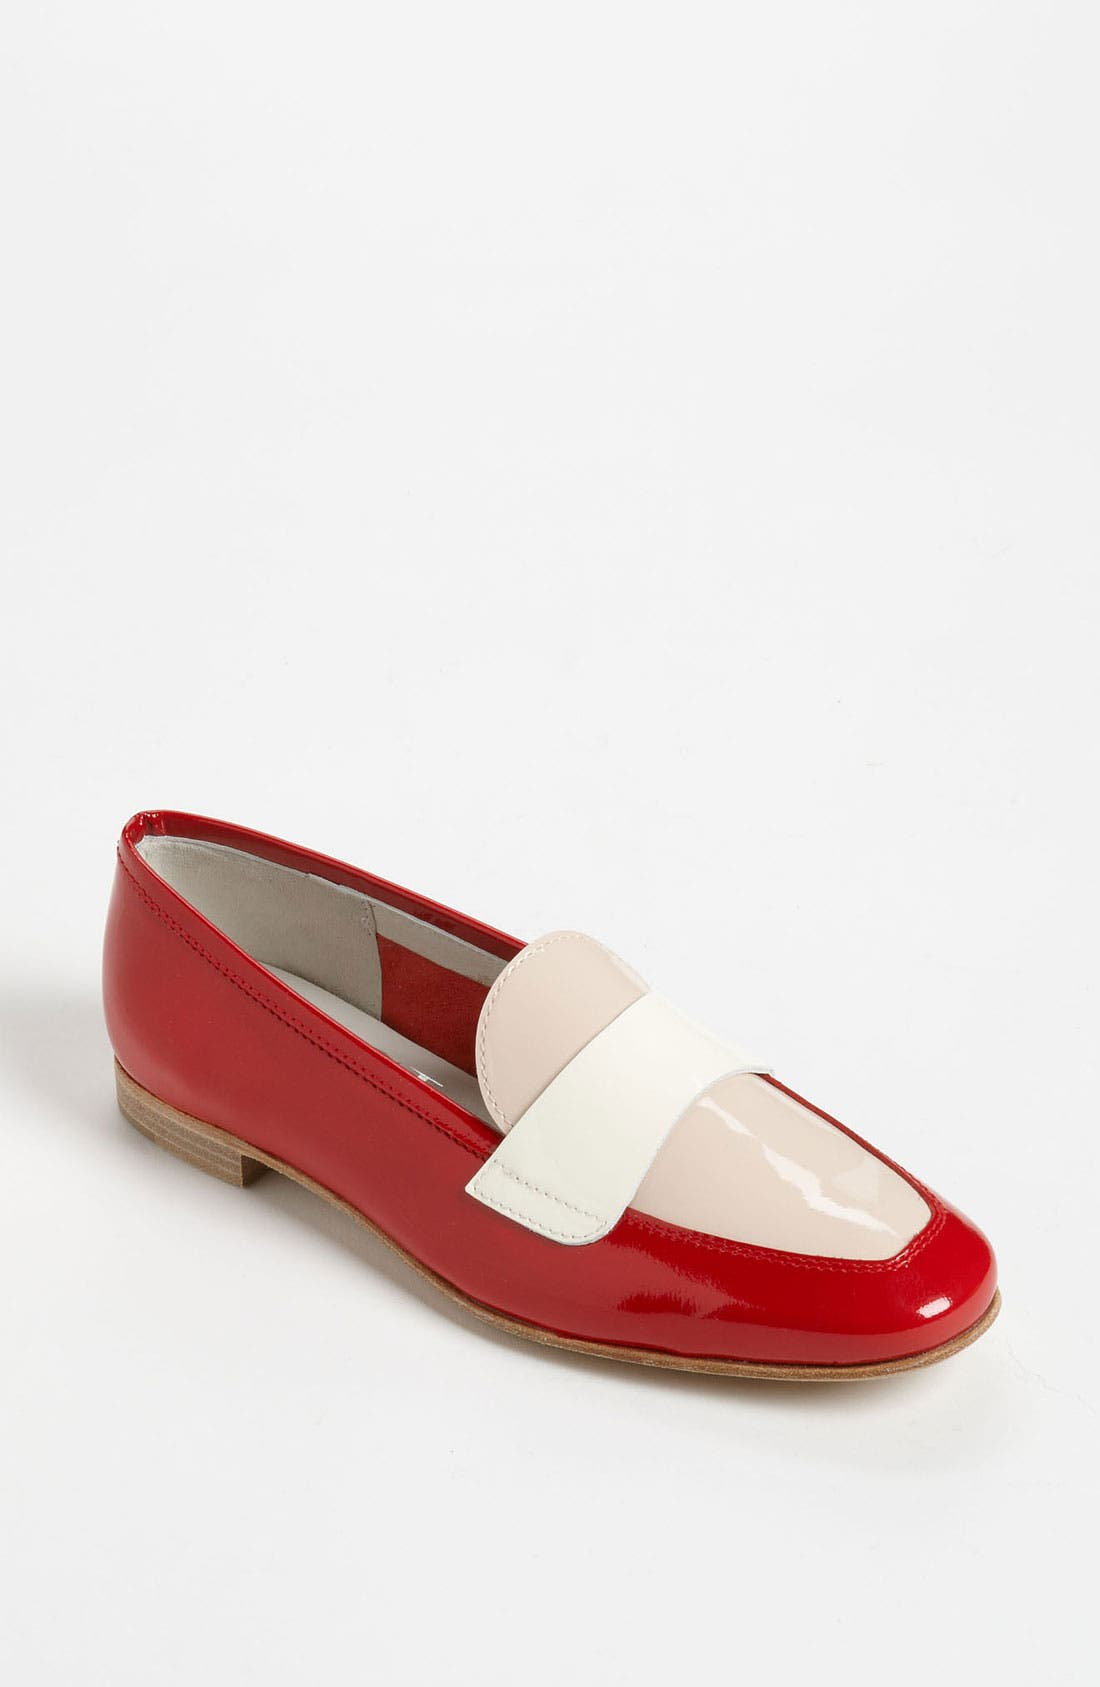 Alternate Image 1 Selected - Attilio Giusti Leombruni Tricolor Slip-On